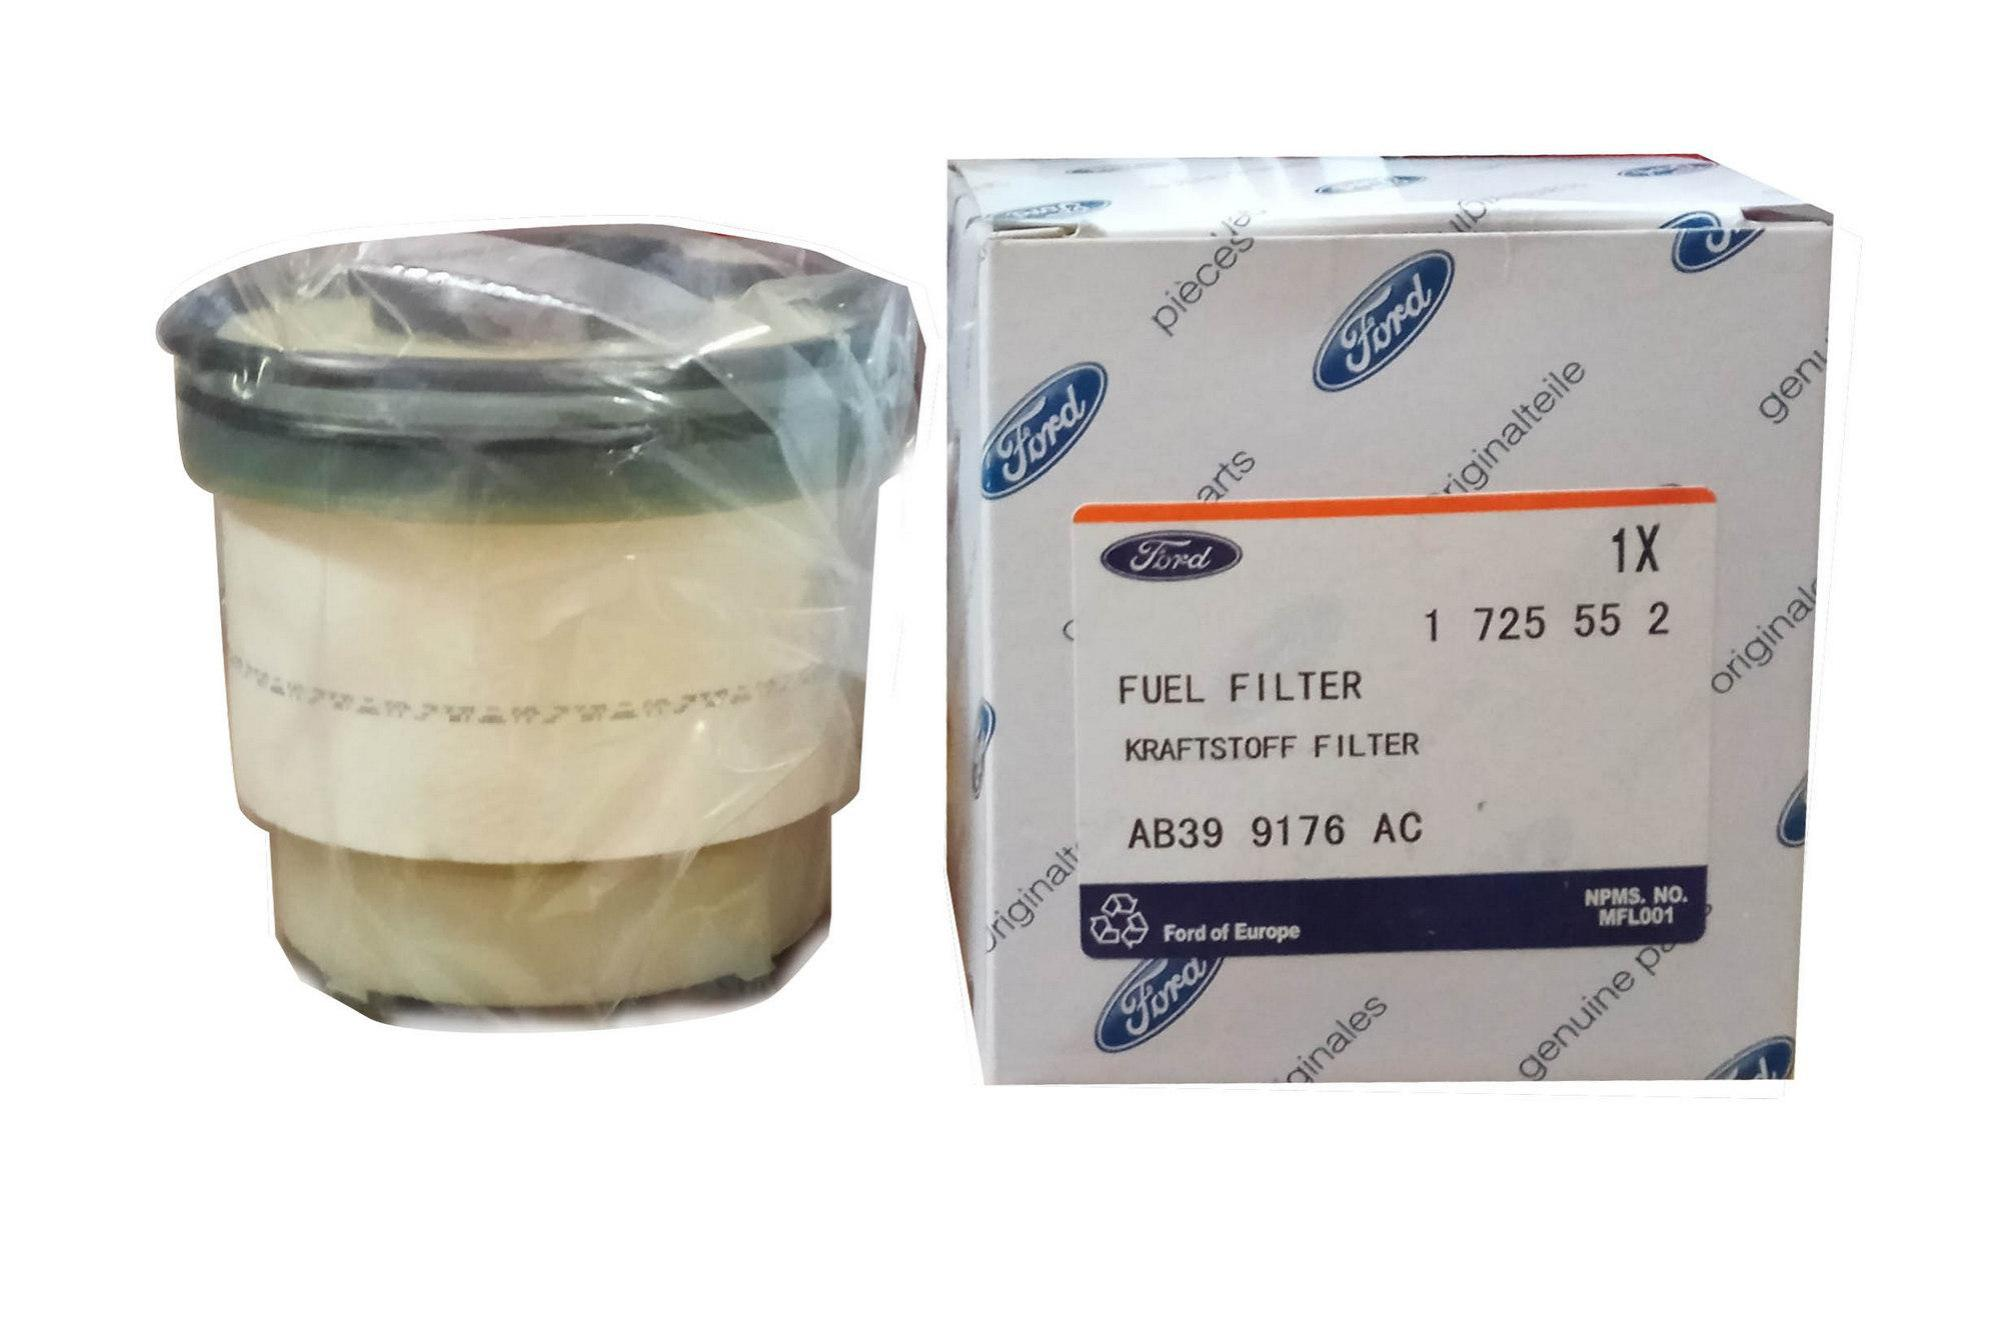 hight resolution of ford genuine fuel filter ab399176ac ab39 91 76ac for ford ranger